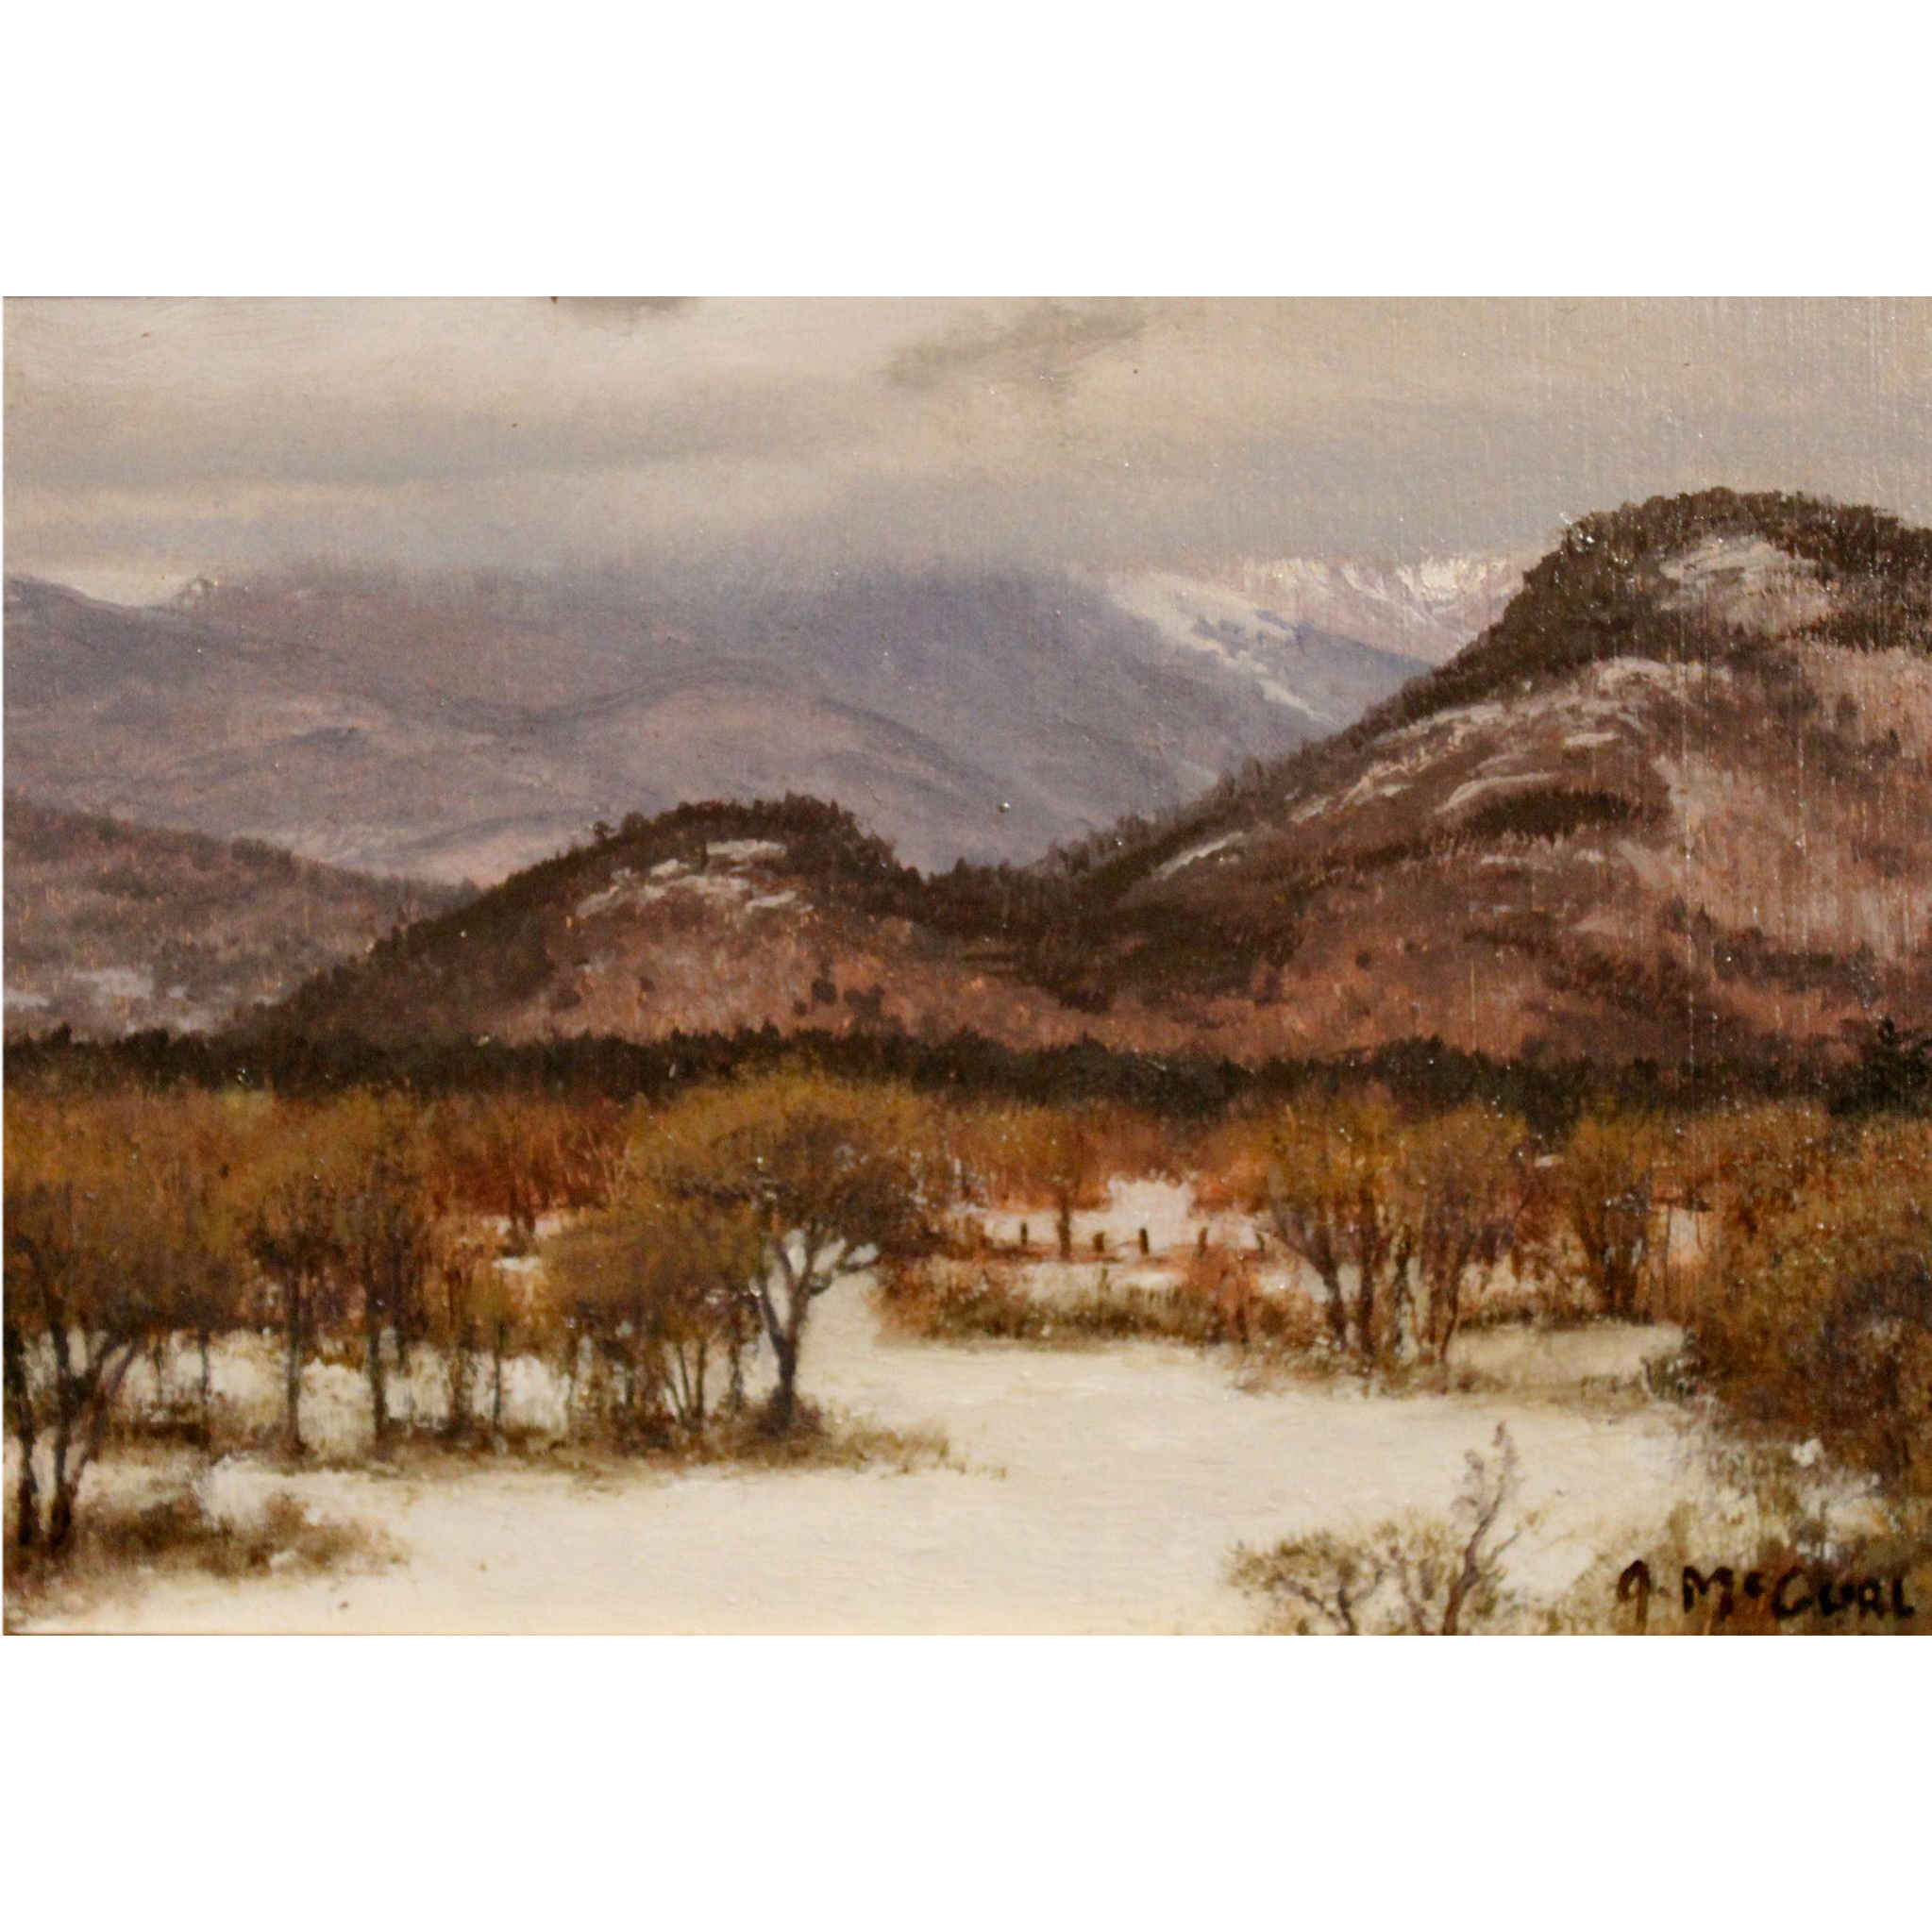 Joseph McGurl Plein Air Oil Painting - Mt. Washington Valley NH